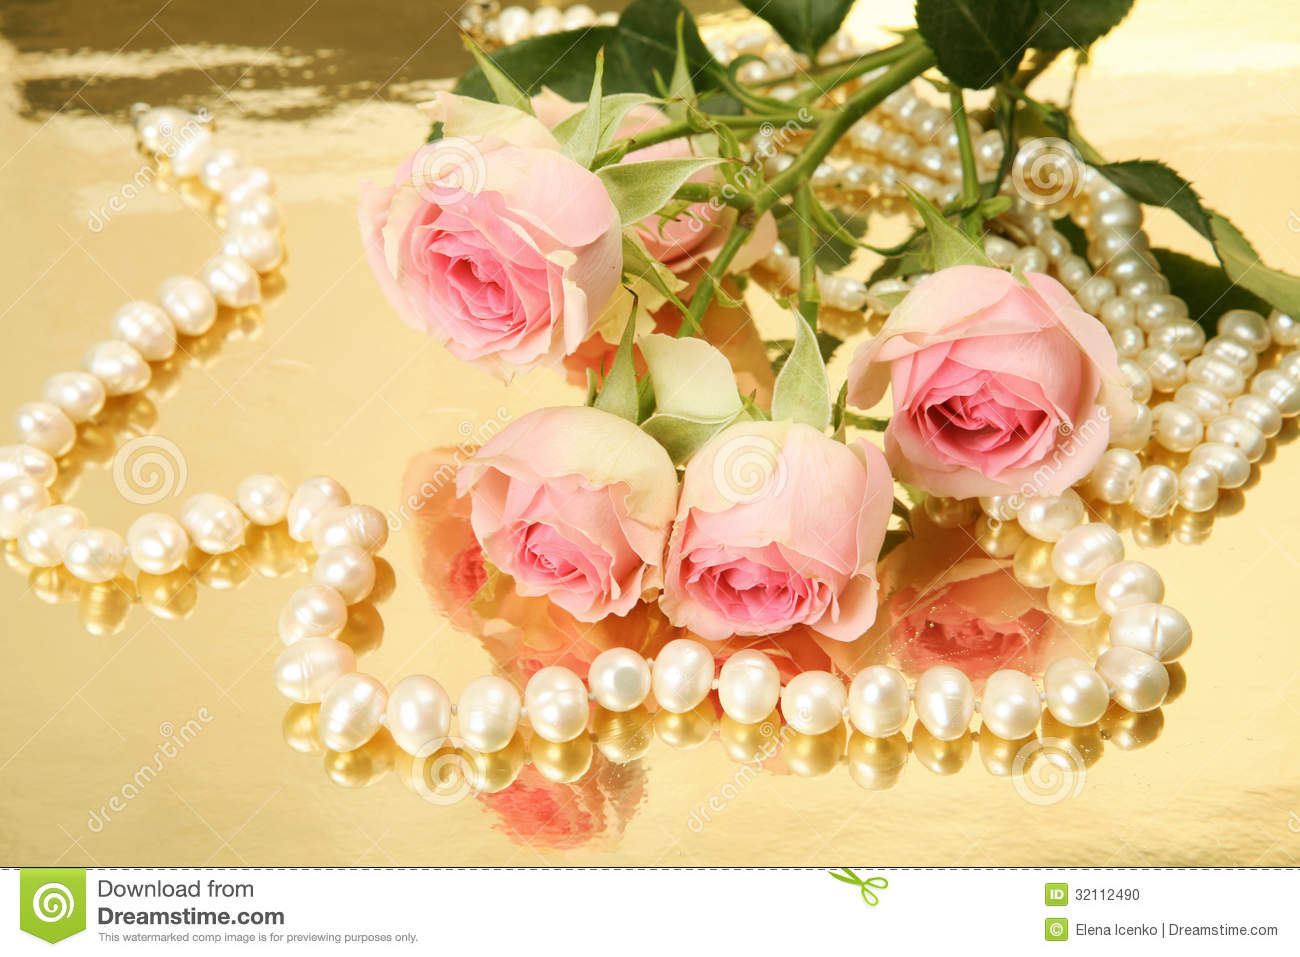 roses and pearls - photo #26